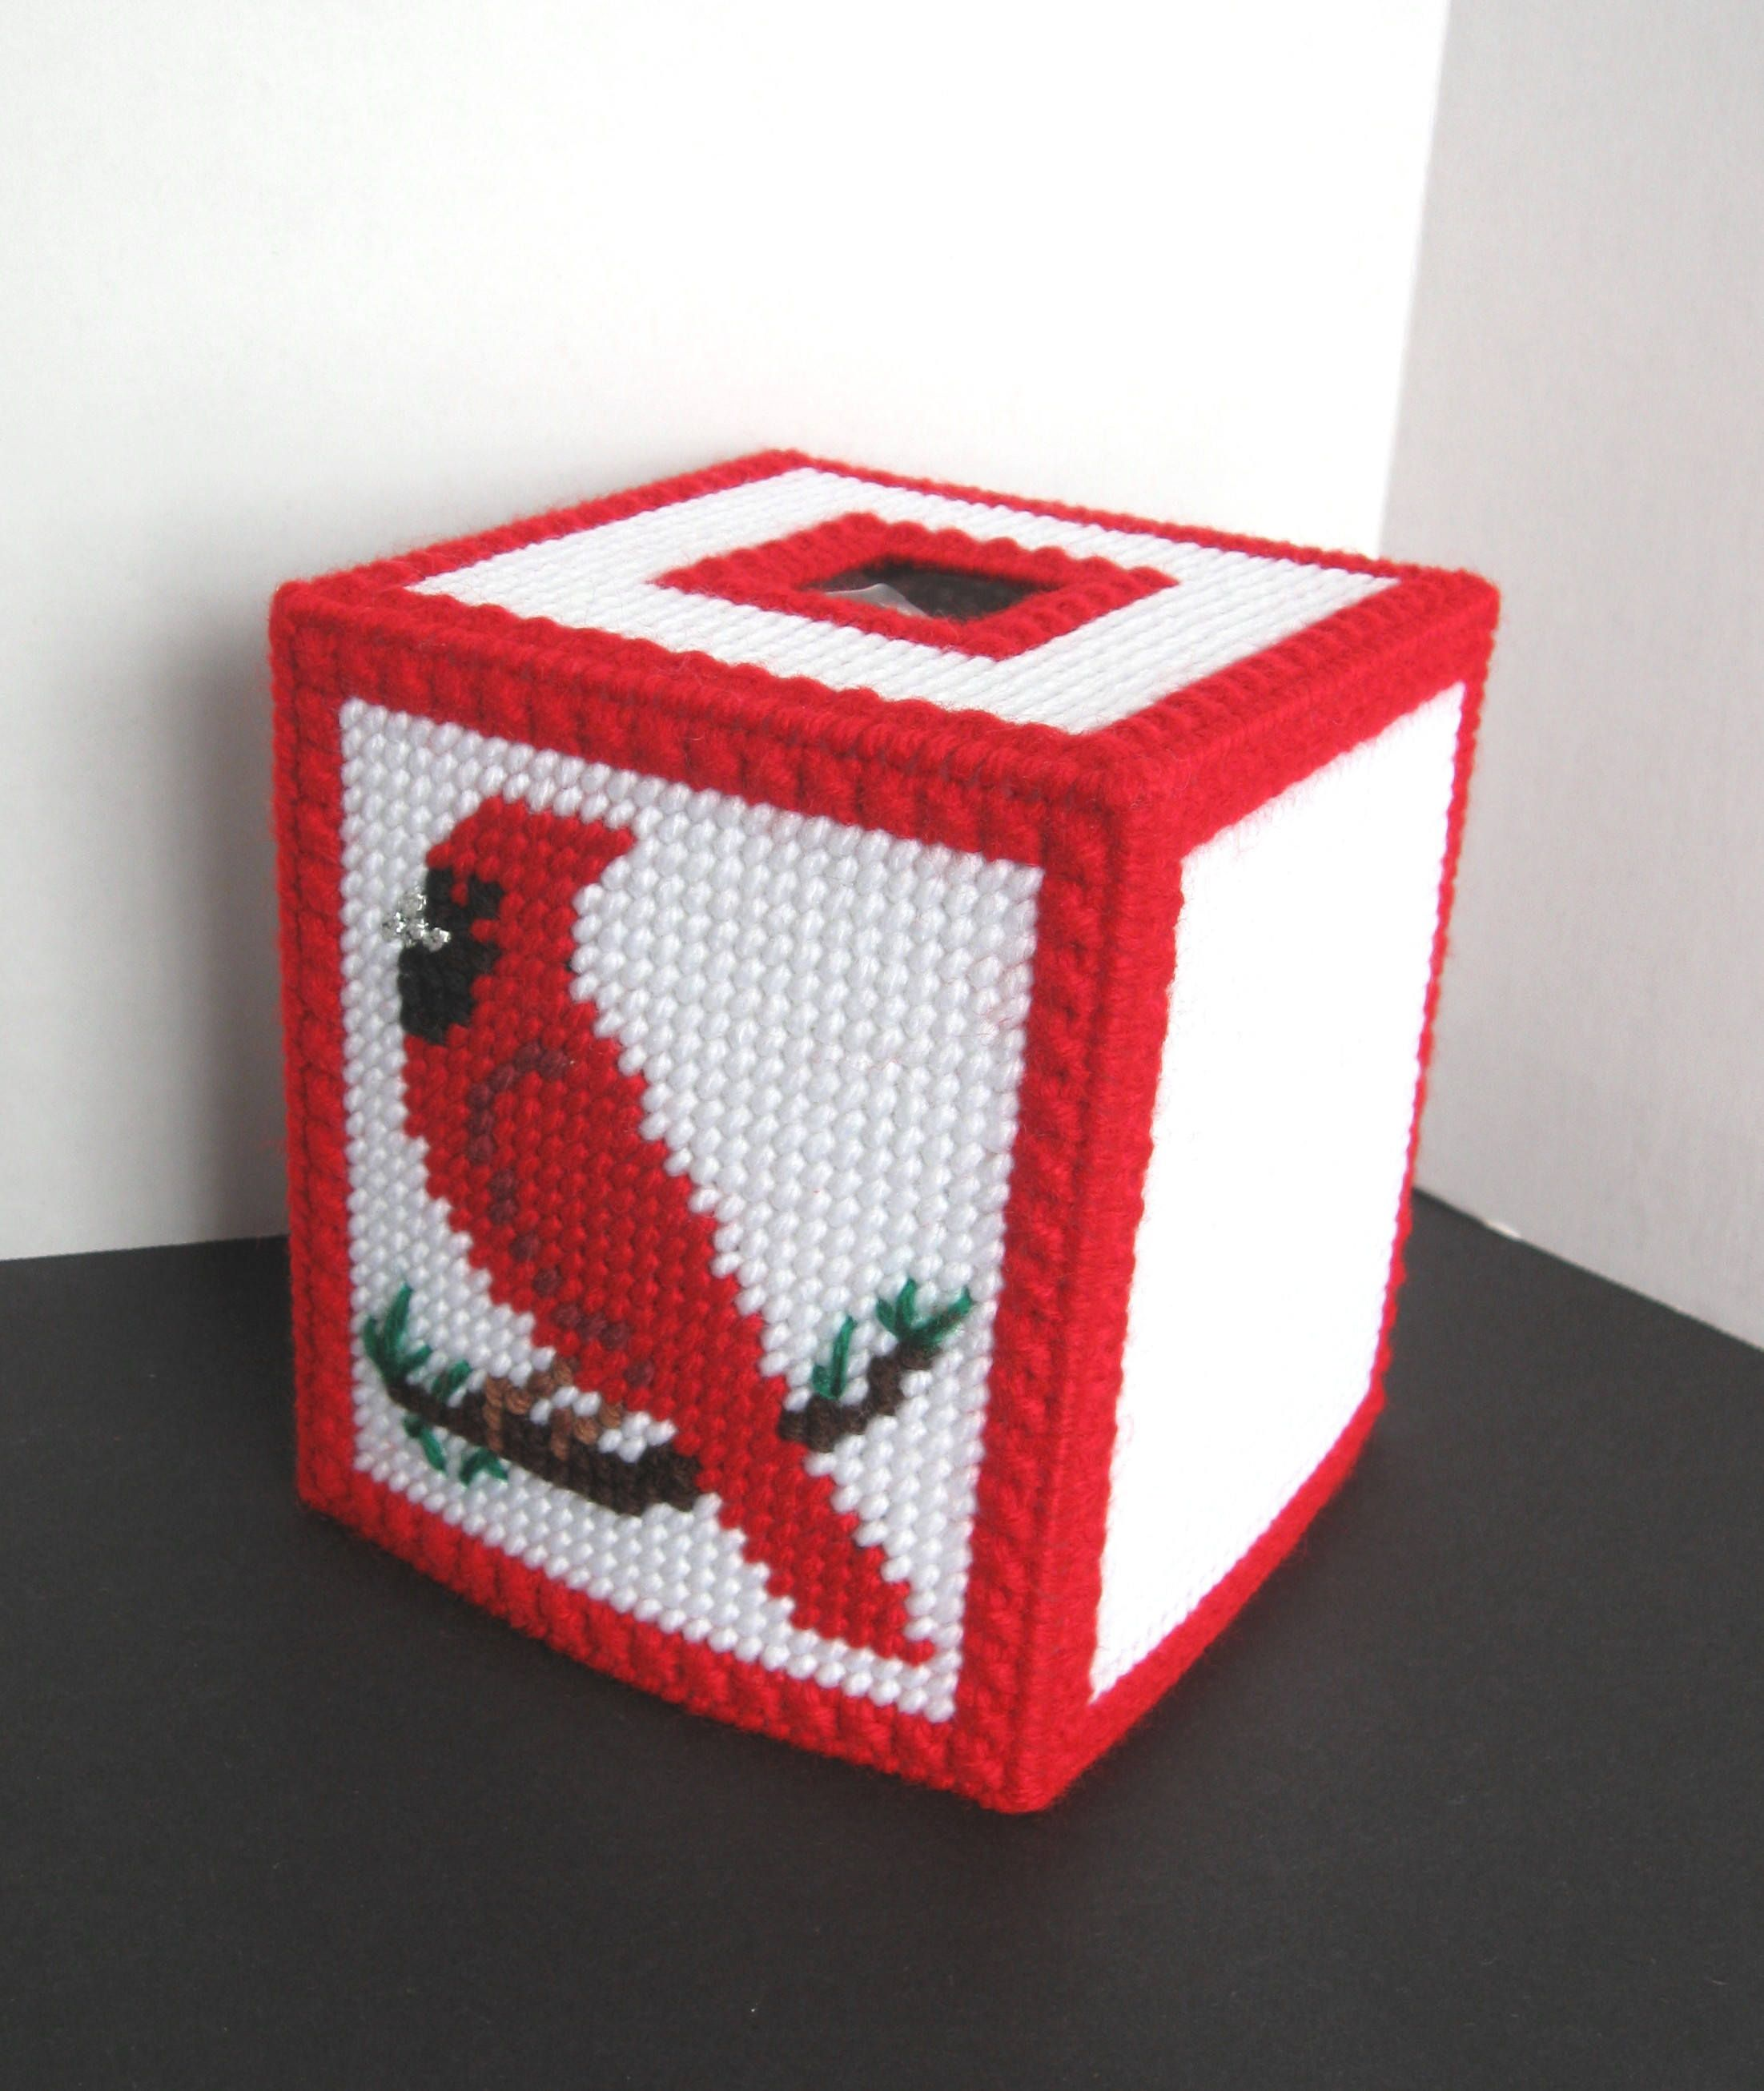 Plastic Canvas Red Cardinal Boutique Tissue Box Cover - White Background